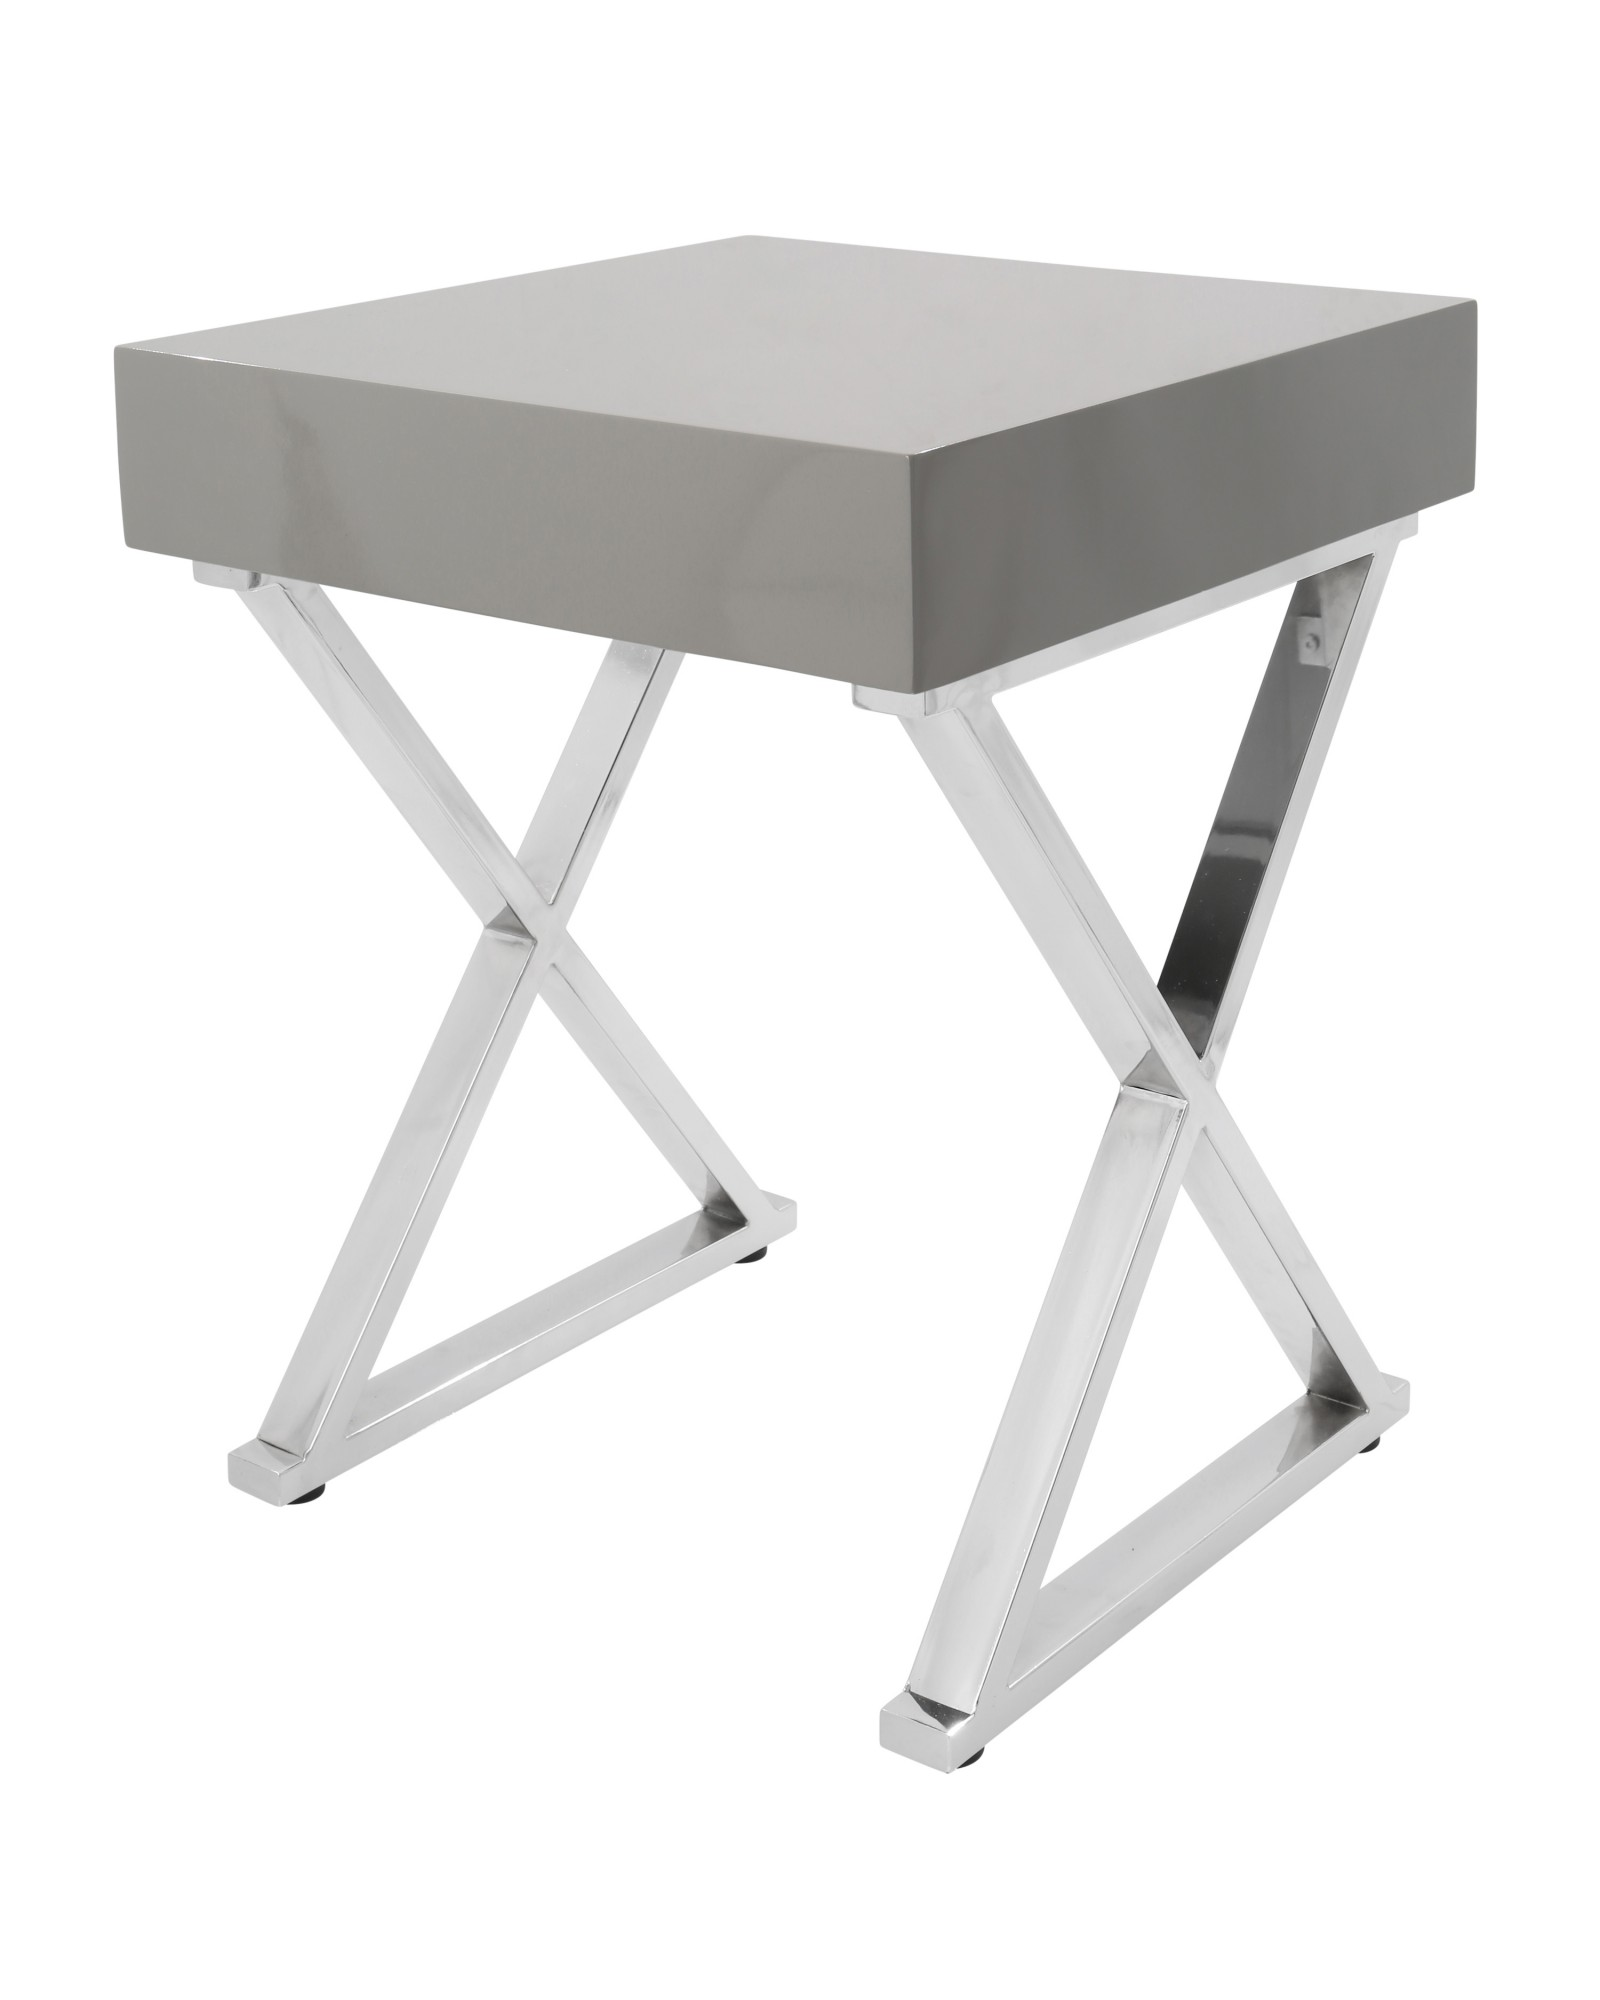 Luster Contemporary Side Table in Grey and Chrome